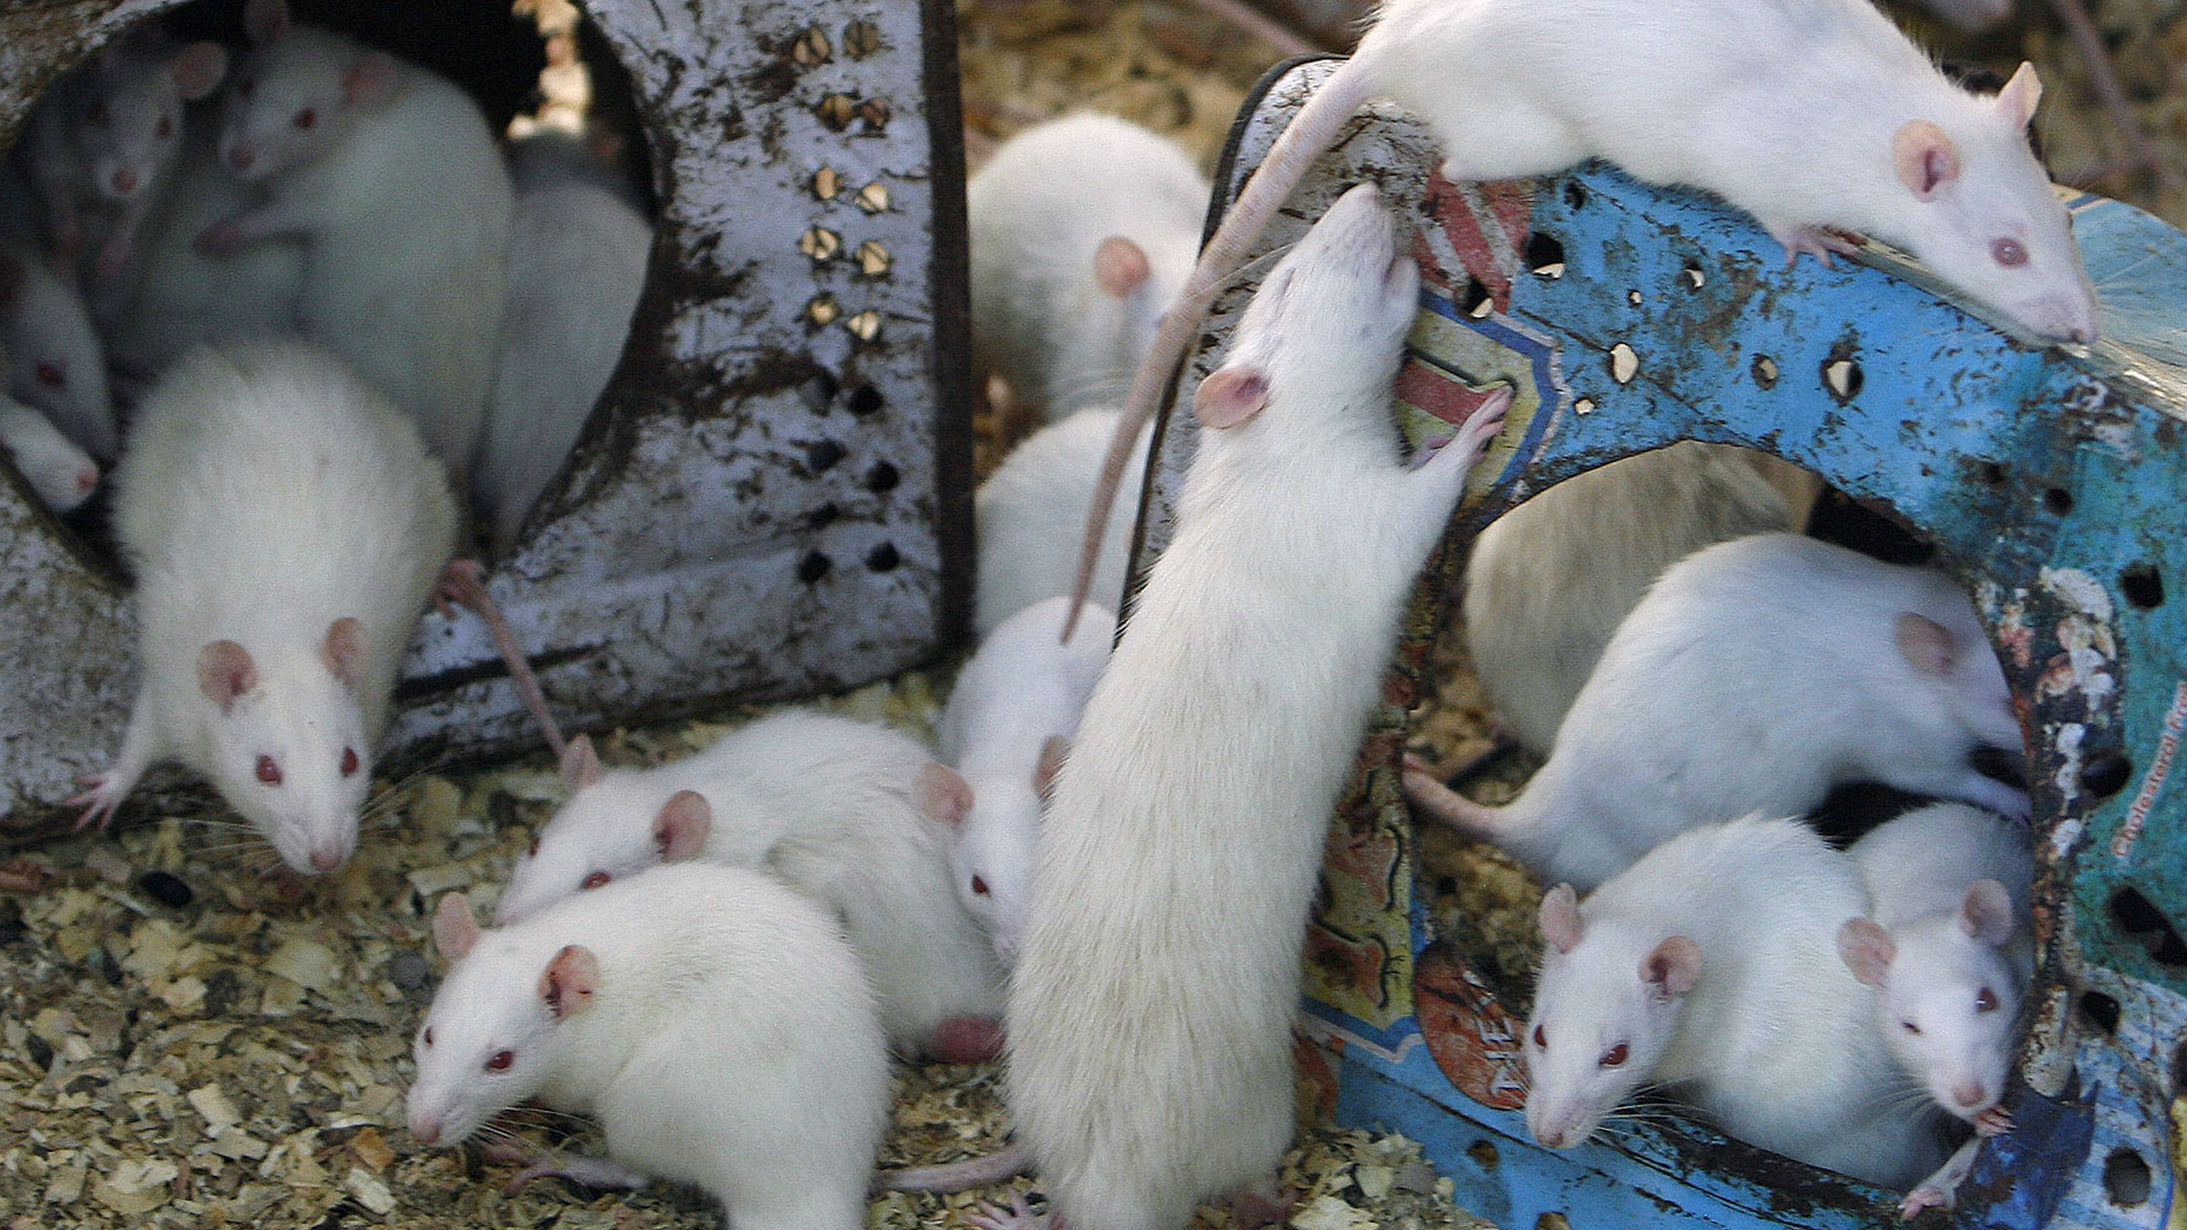 NYC Mice Carry Antibiotic-Resistant Bacteria